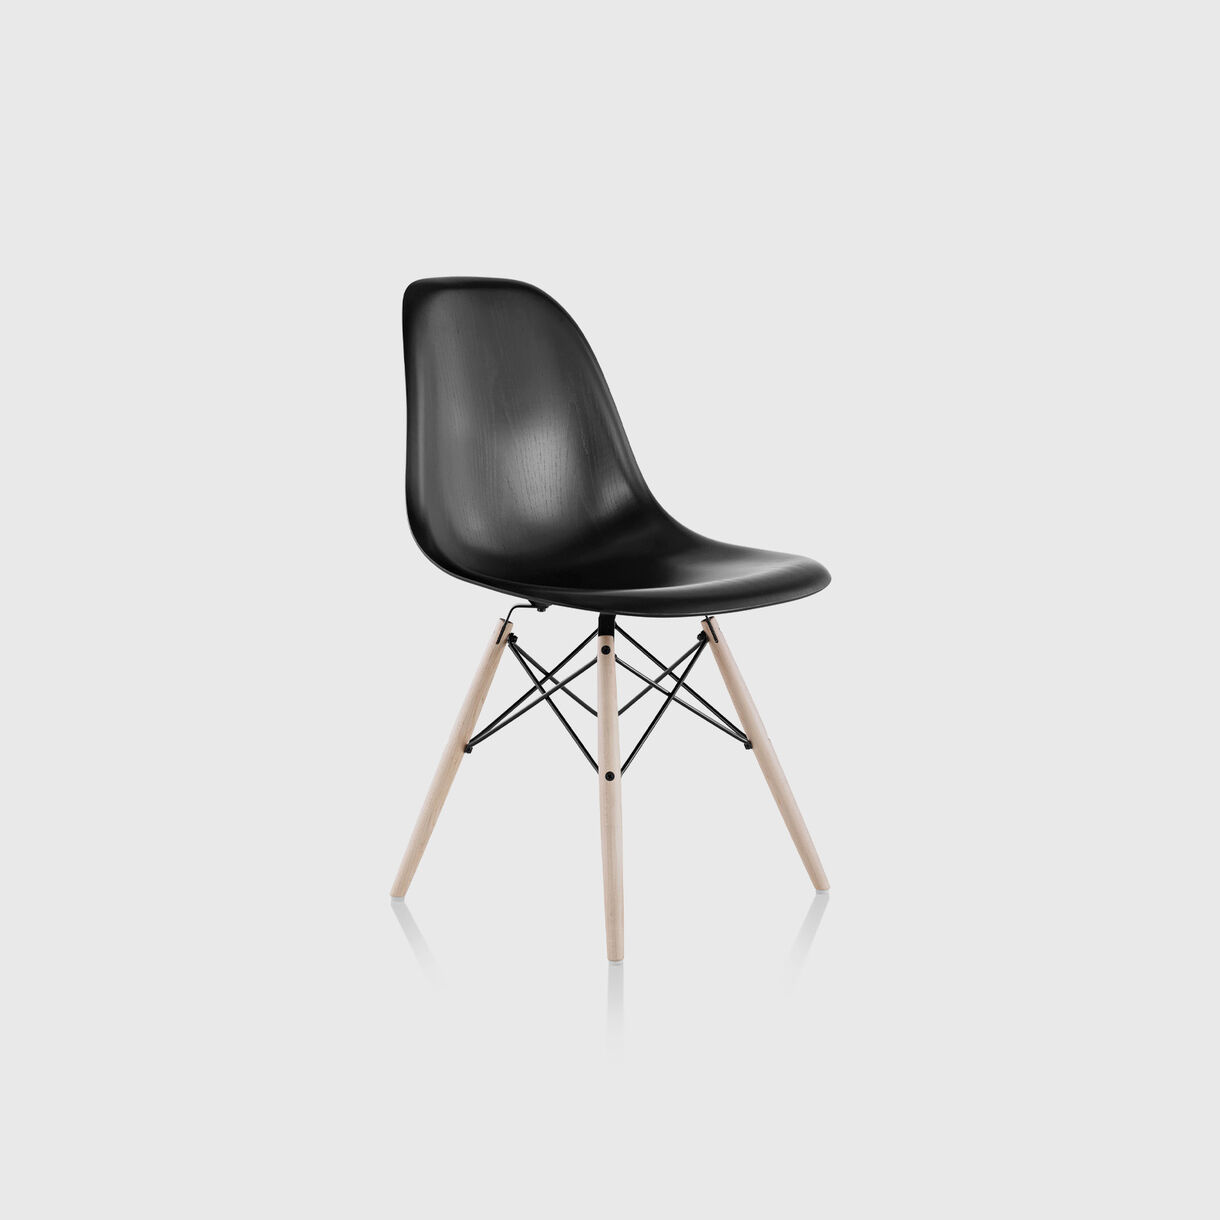 Eames Moulded Wood Side Chair, Dowel Base